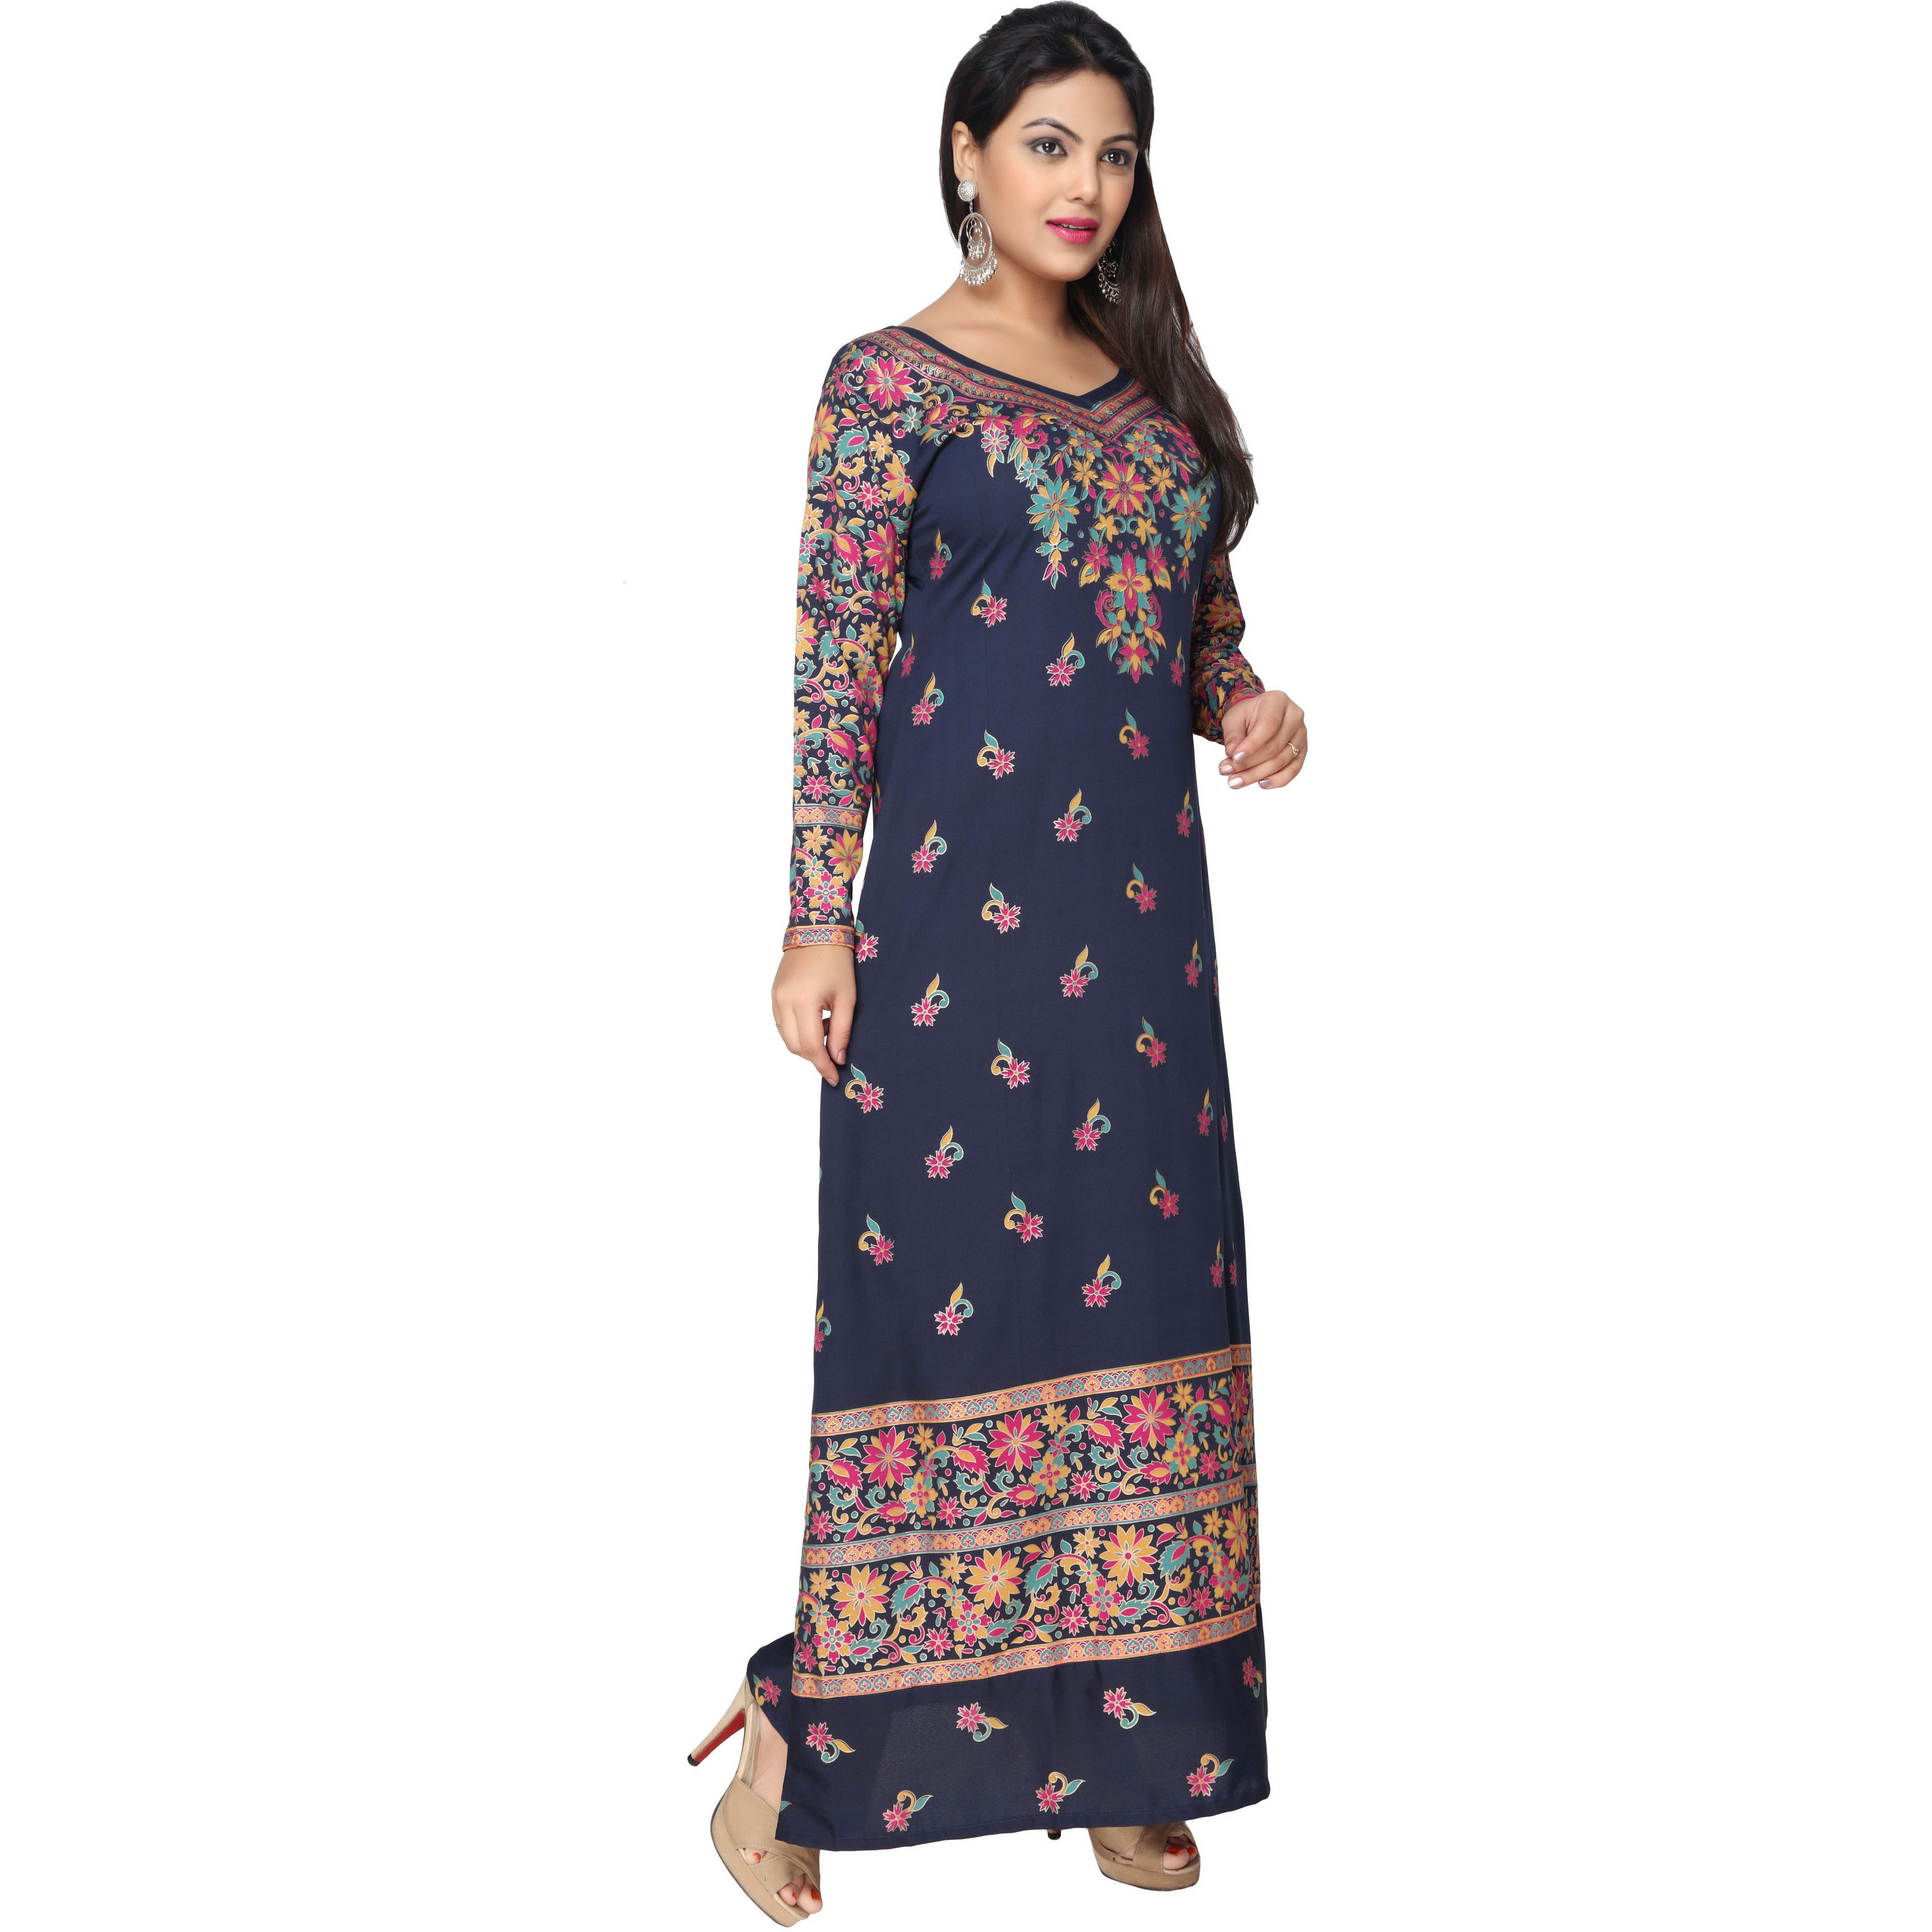 TrendyFashionMall Gold Print Kaftans Maxi Dresses with design in Front and Back (Color:TFMKFT01052-BLUEMULTI, Size:38 - SMALL)